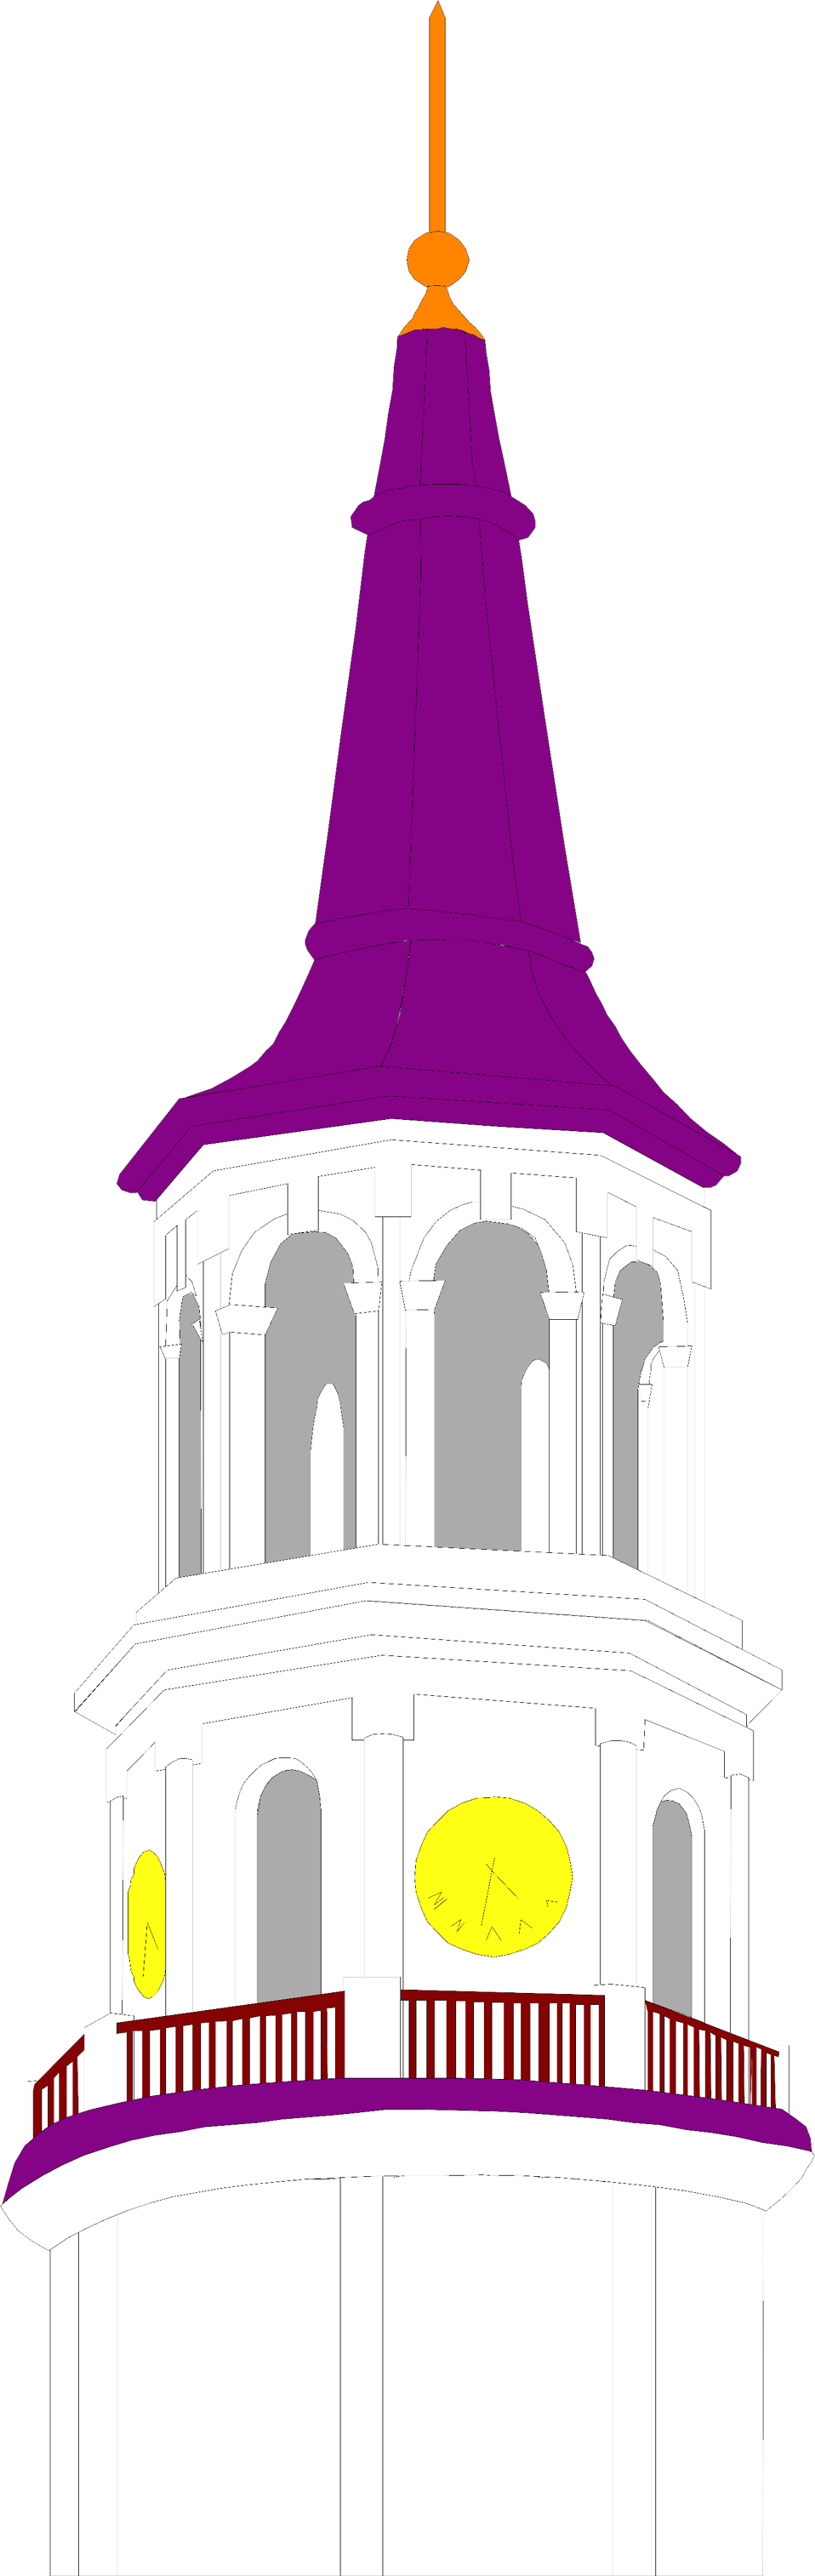 Illustration of a clock tower : Free Stock Photo